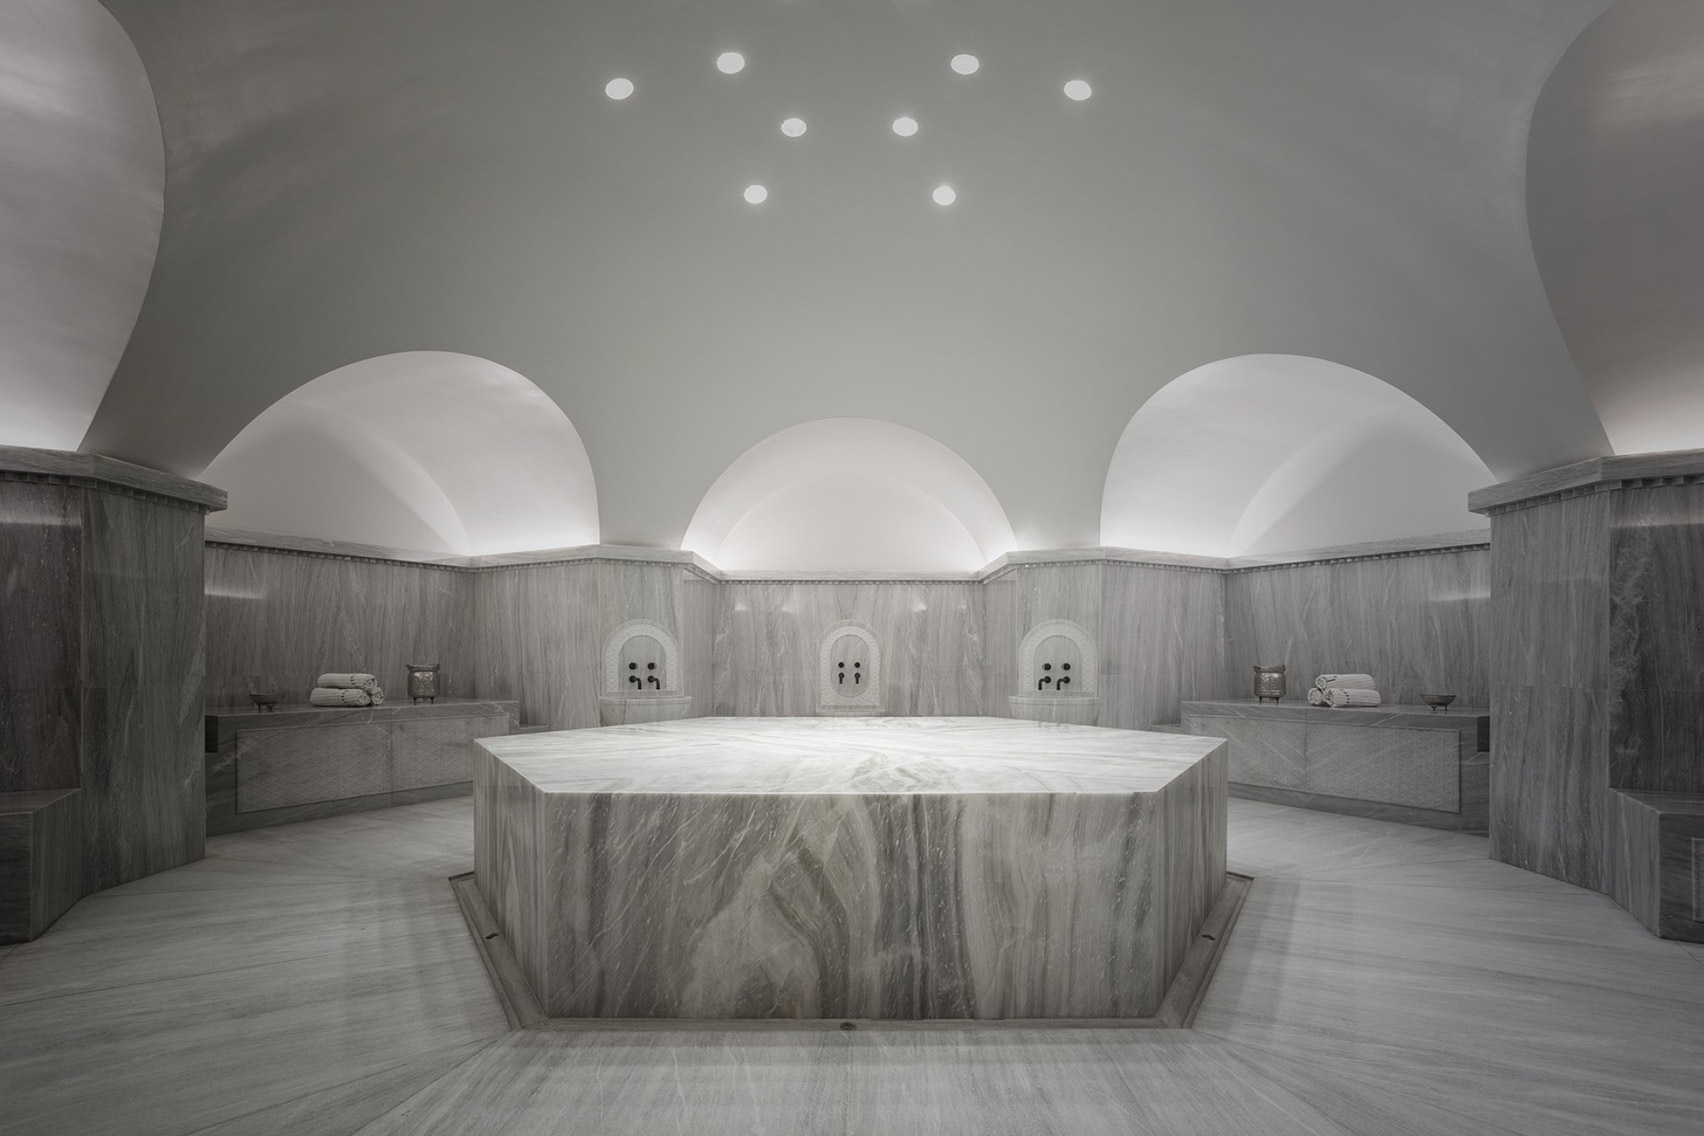 Euphoria spa in the Euphoria retreat by decaARCHITECTURE